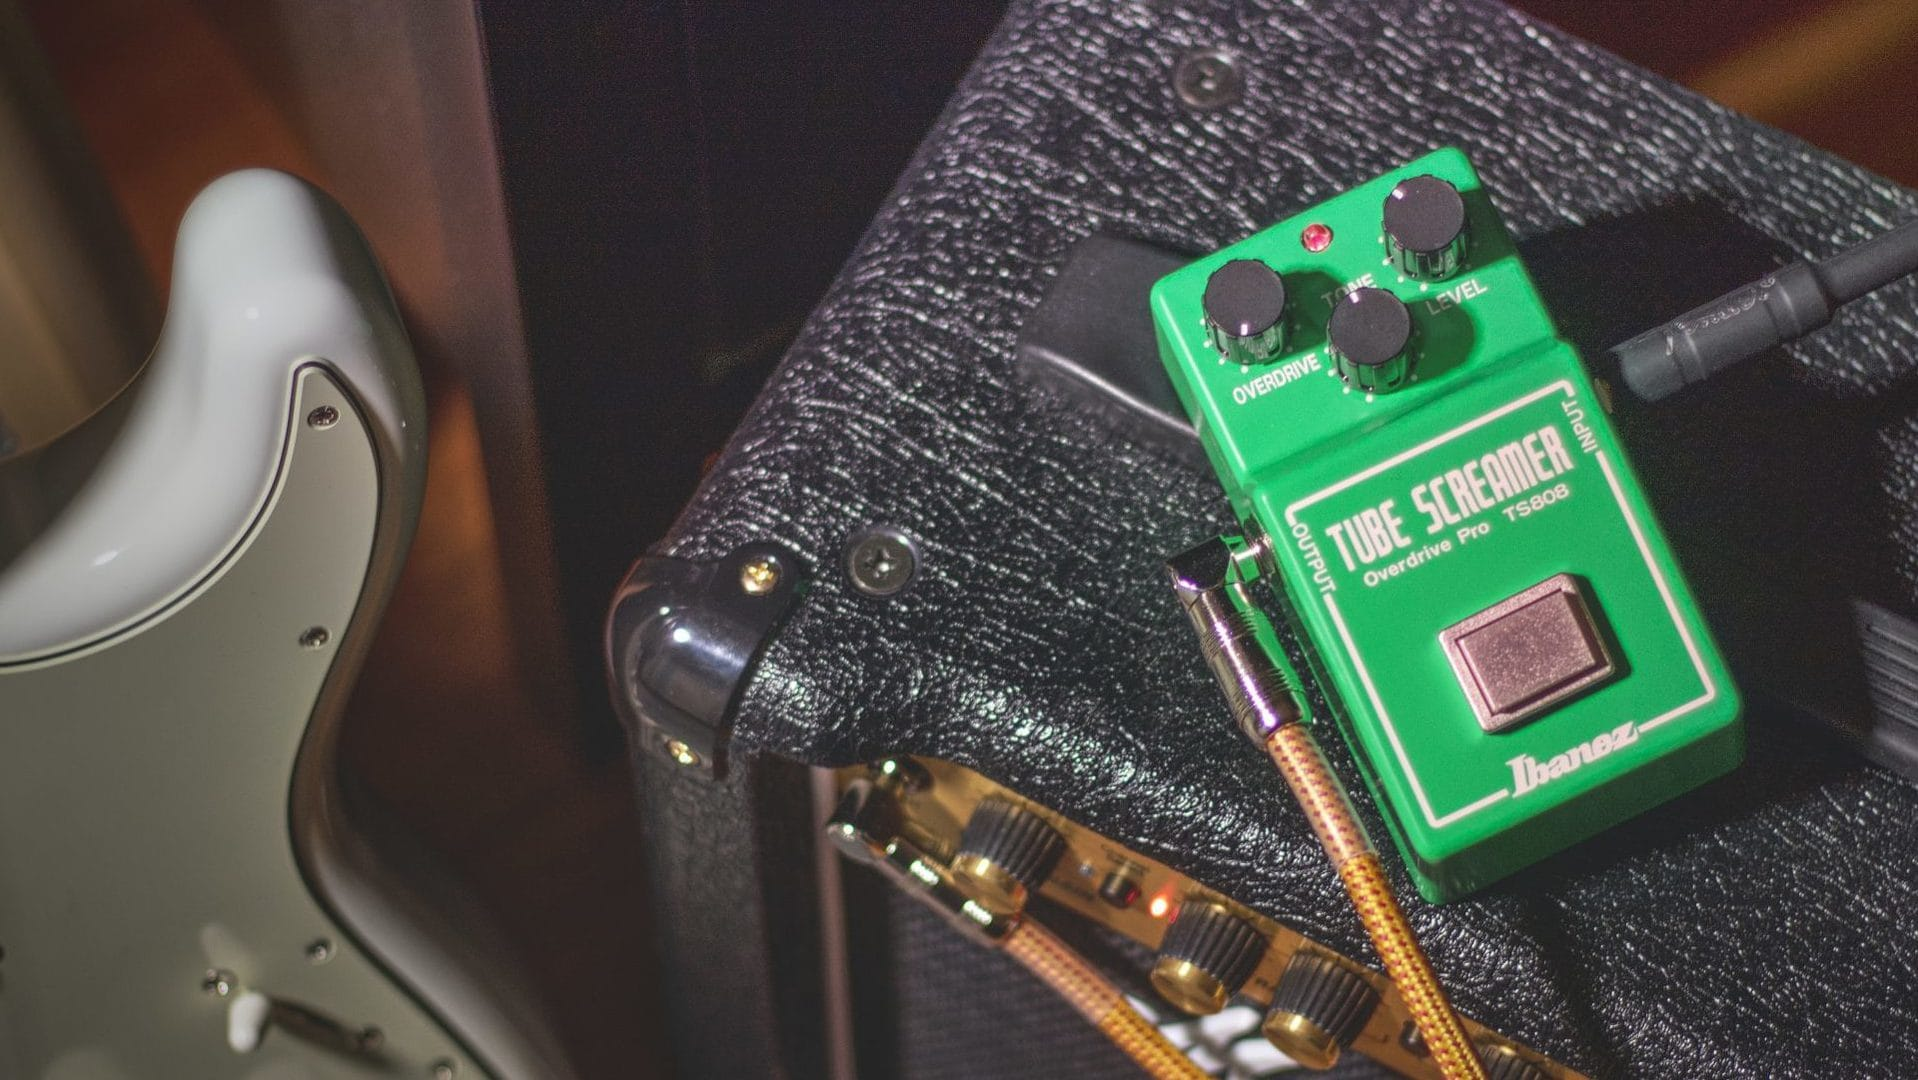 A bedroom rig similar to Stevie Ray Vaughan's iconic choices